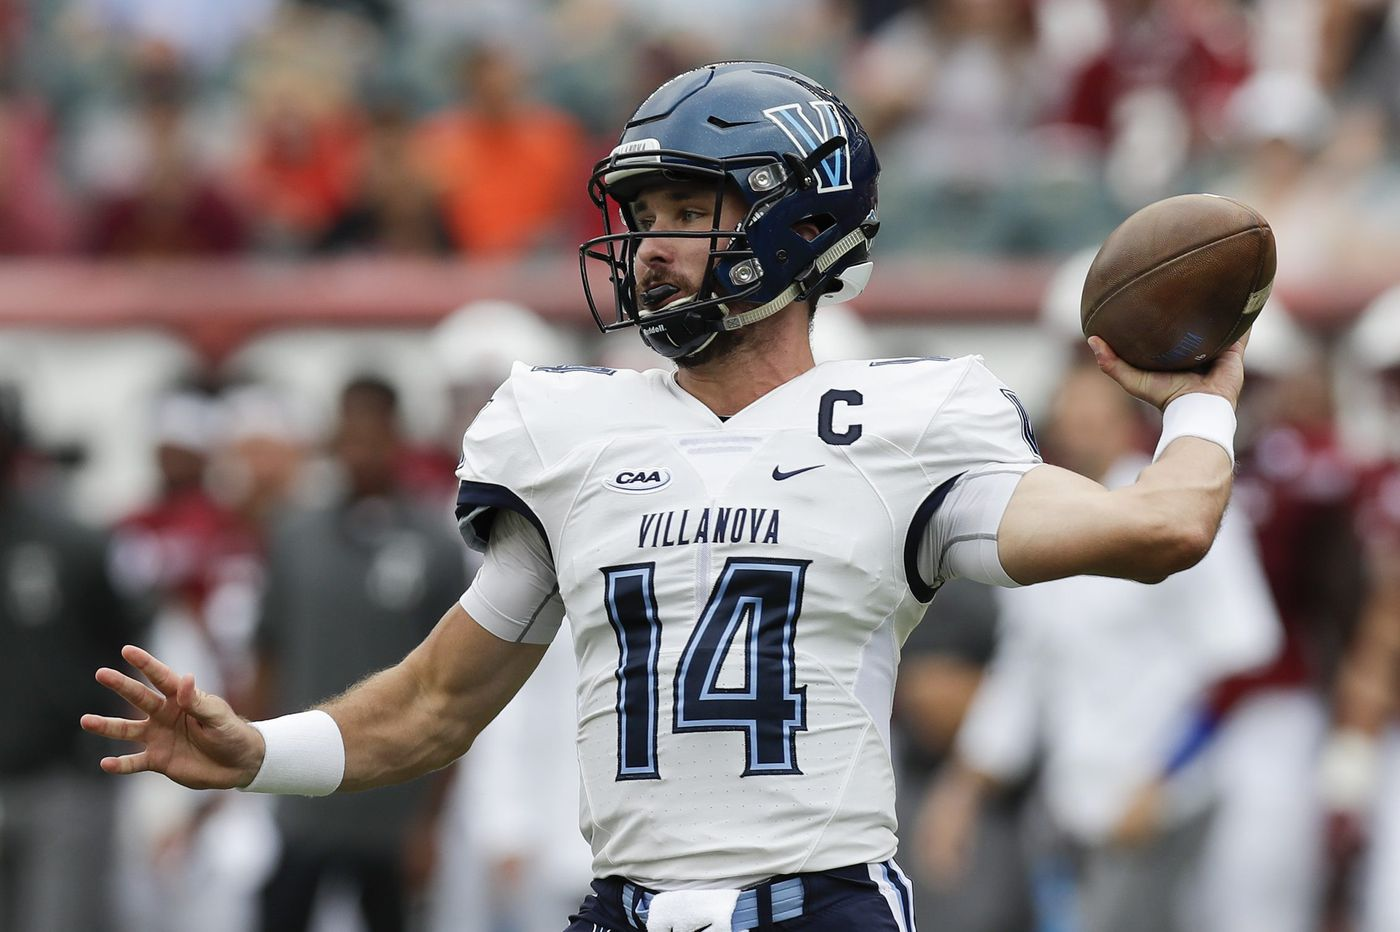 Villanova riding high entering matchup with William & Mary